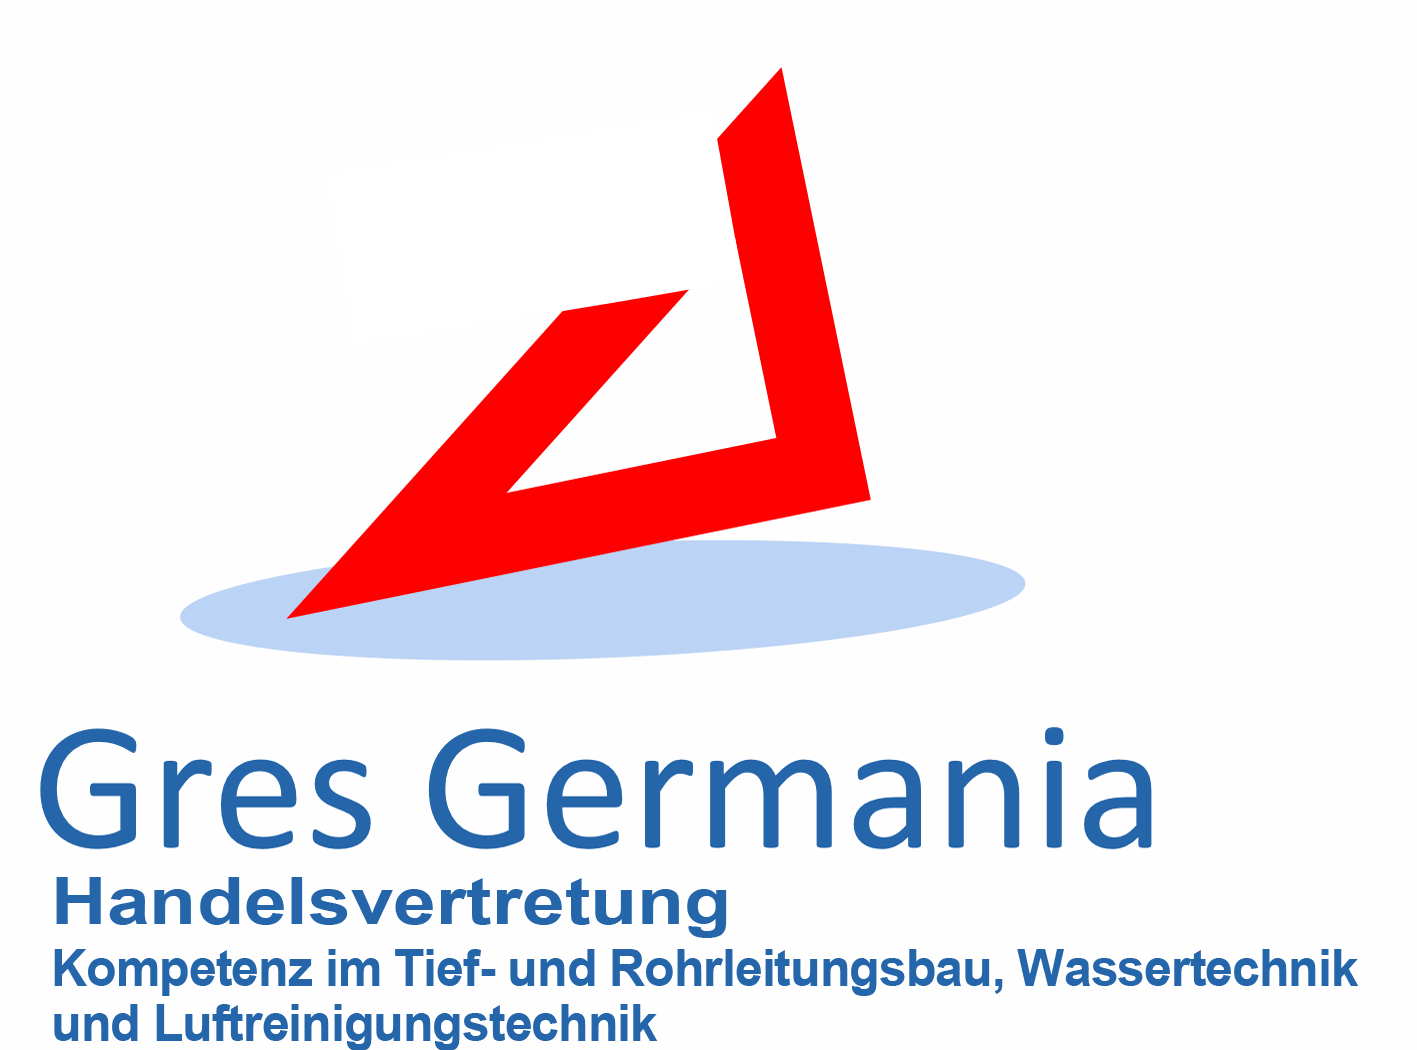 Gres Germania Handelsvertretung